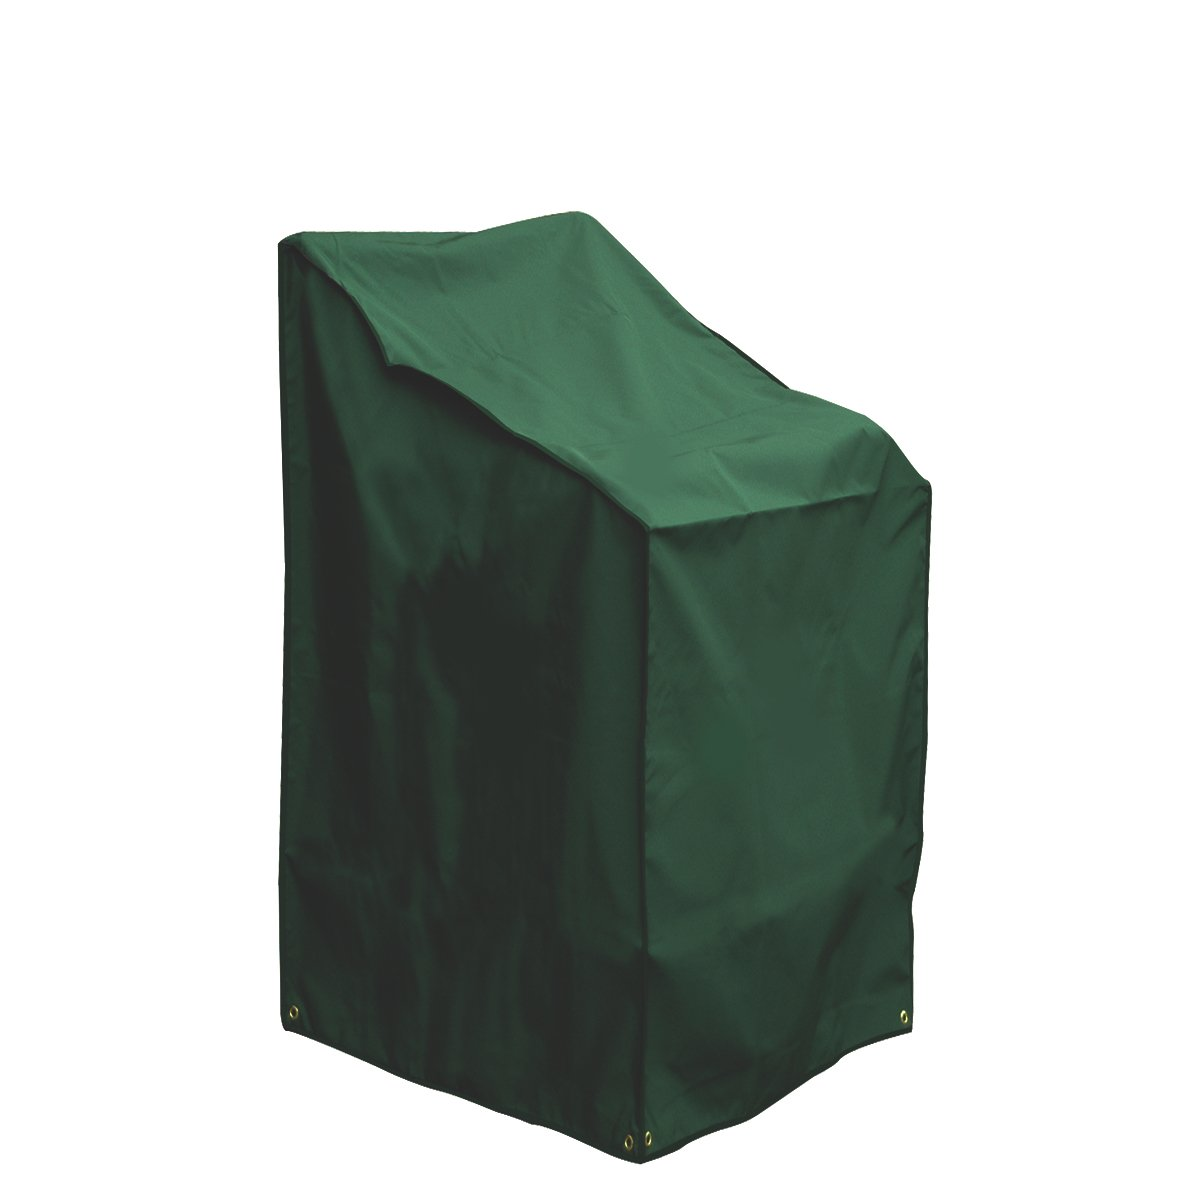 Amazon com   Bosmere C570 Stacking Chairs Cover  42  High at Back 27  at  Front x 27  Deep x 24  Wide  Green   Patio Chair Covers   Garden   Outdoor. Amazon com   Bosmere C570 Stacking Chairs Cover  42  High at Back